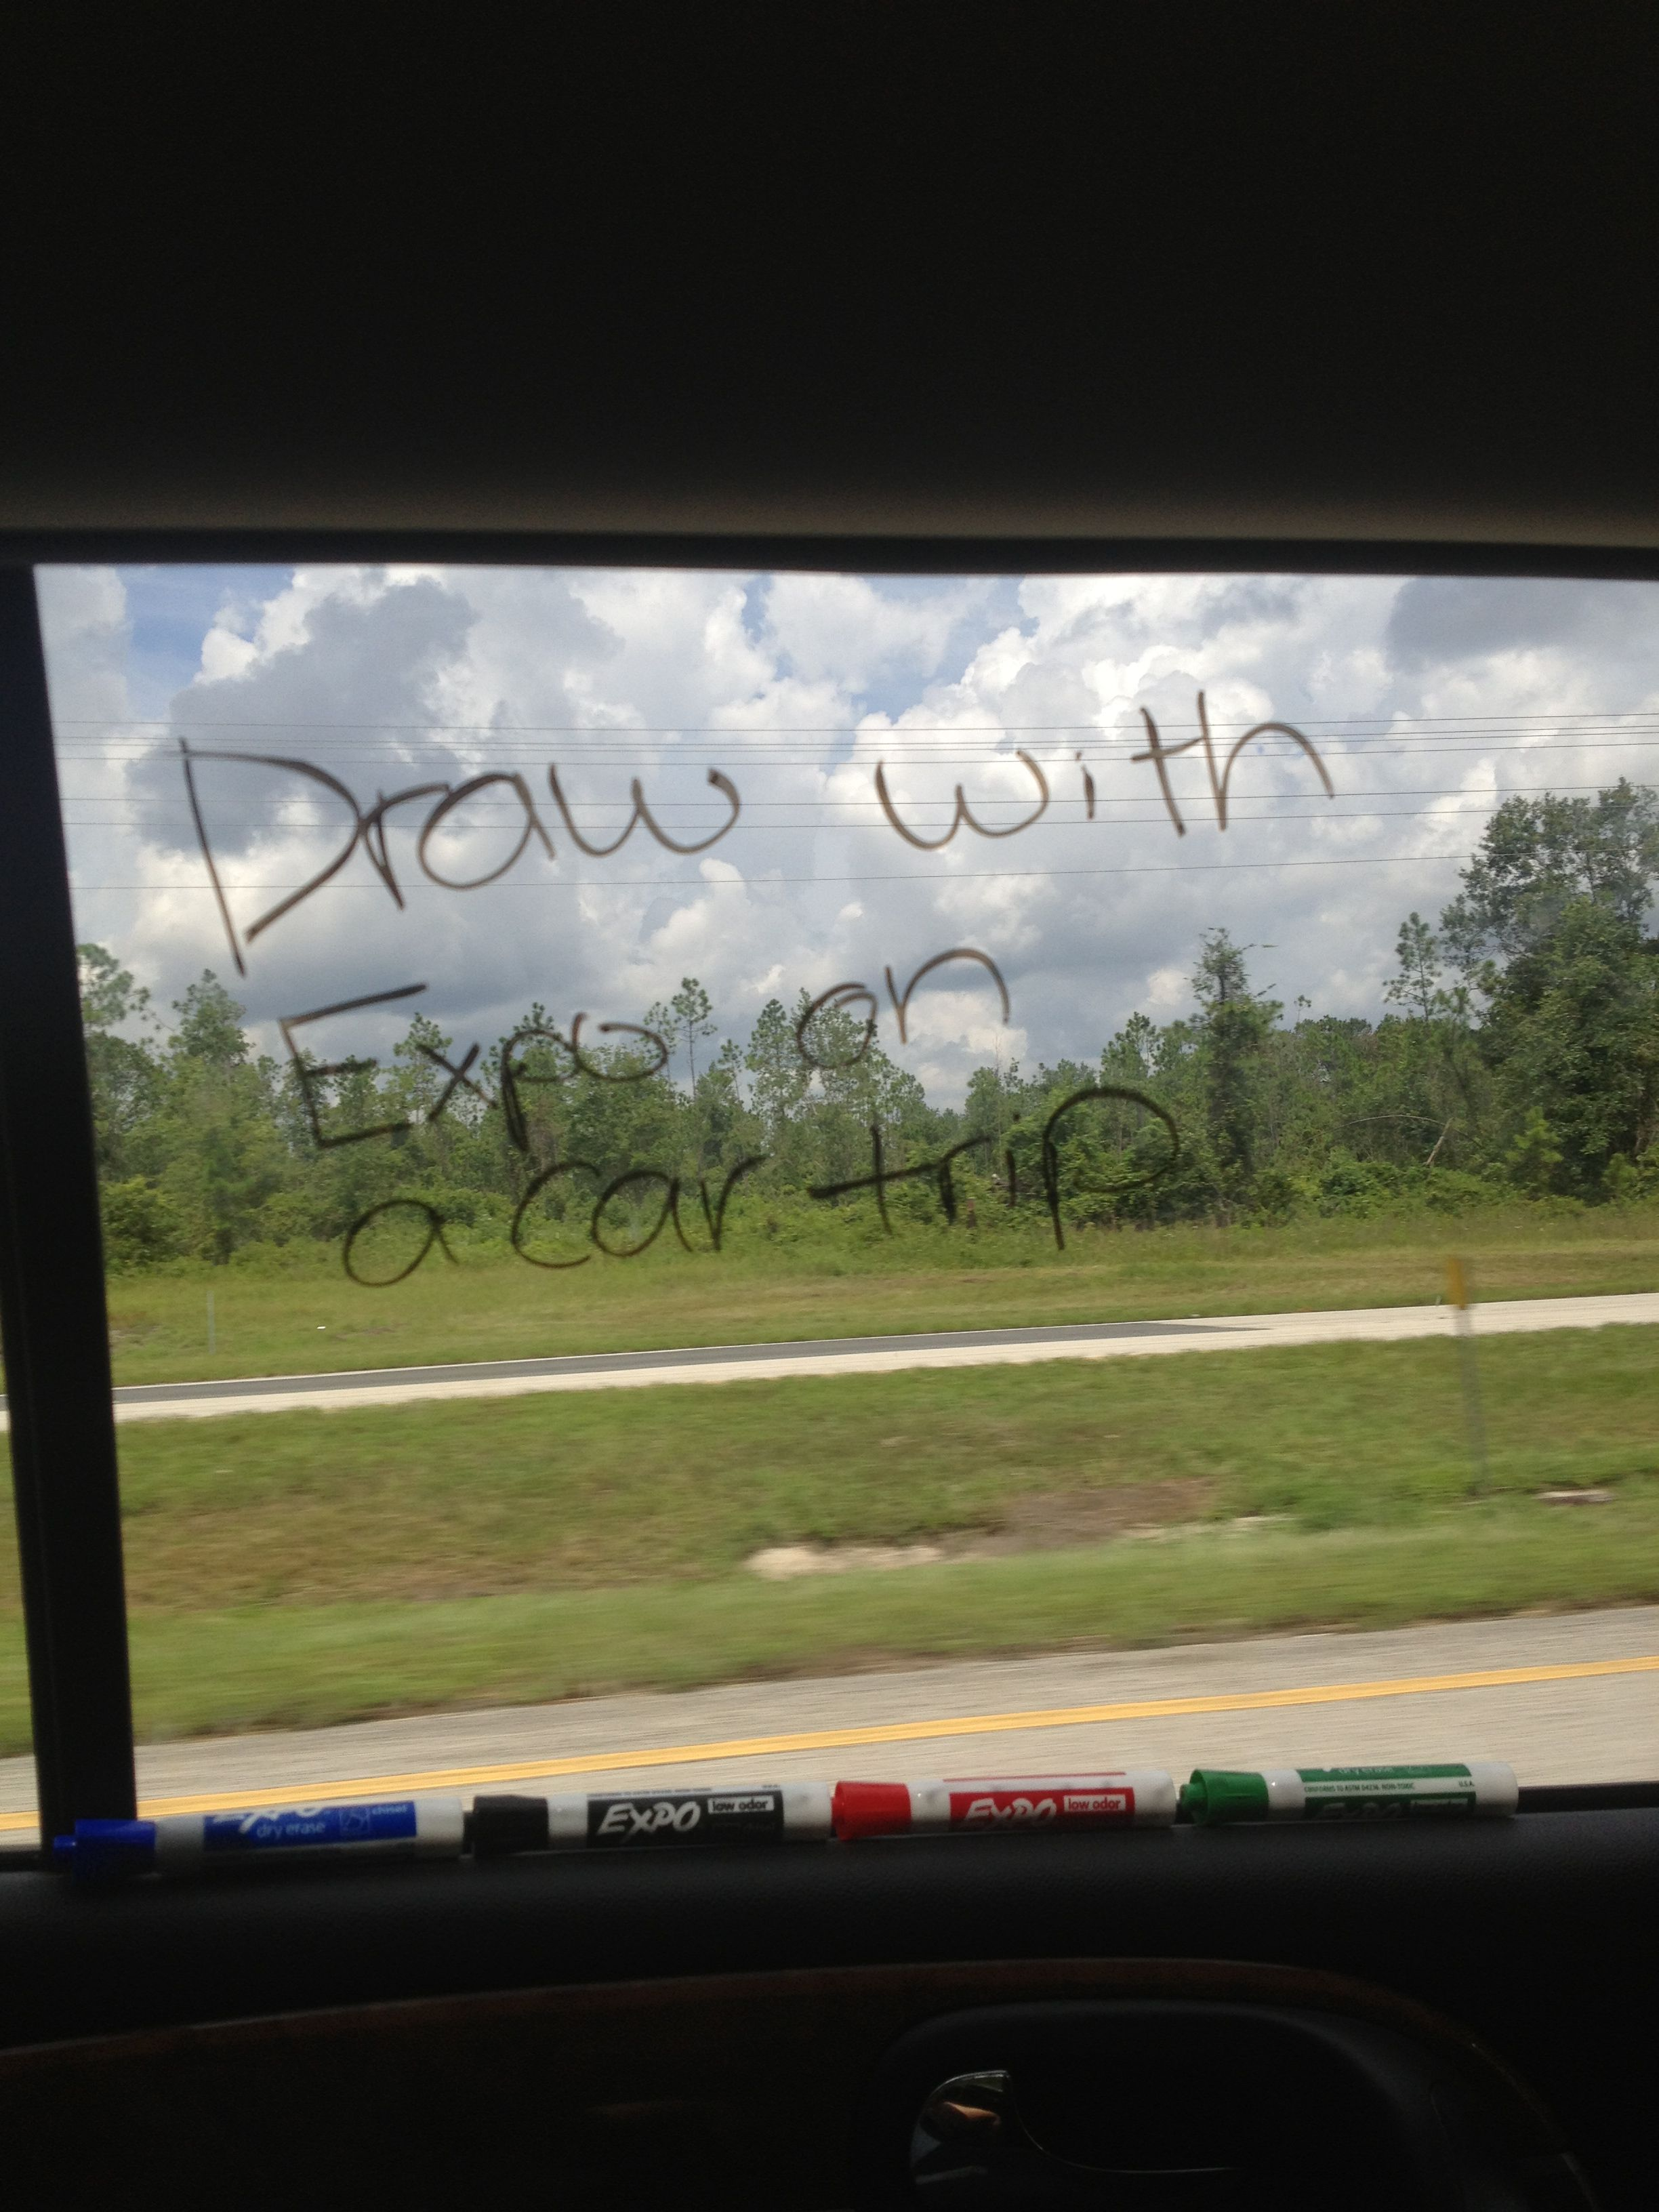 Use Expo Markers On A Car Window On A Long Car Trip Whiteboard Markers Would Do Too Vacation Road Trips Trip Car Travel